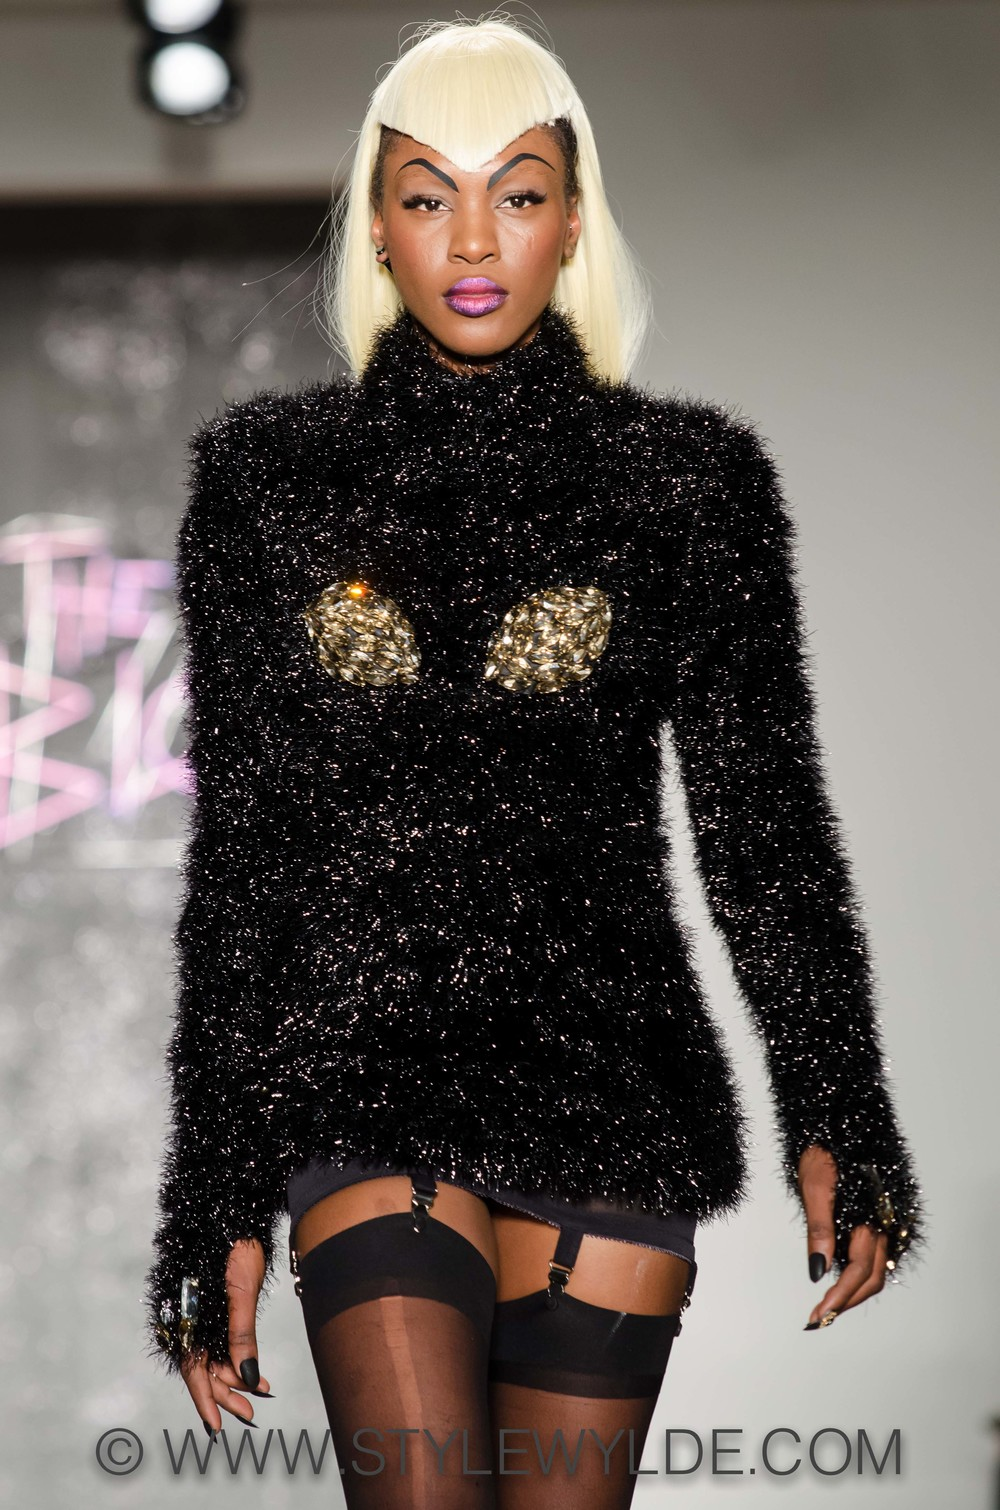 Stylewylde_Blonds_FW2014_FOH_CA (8 of 16).jpg